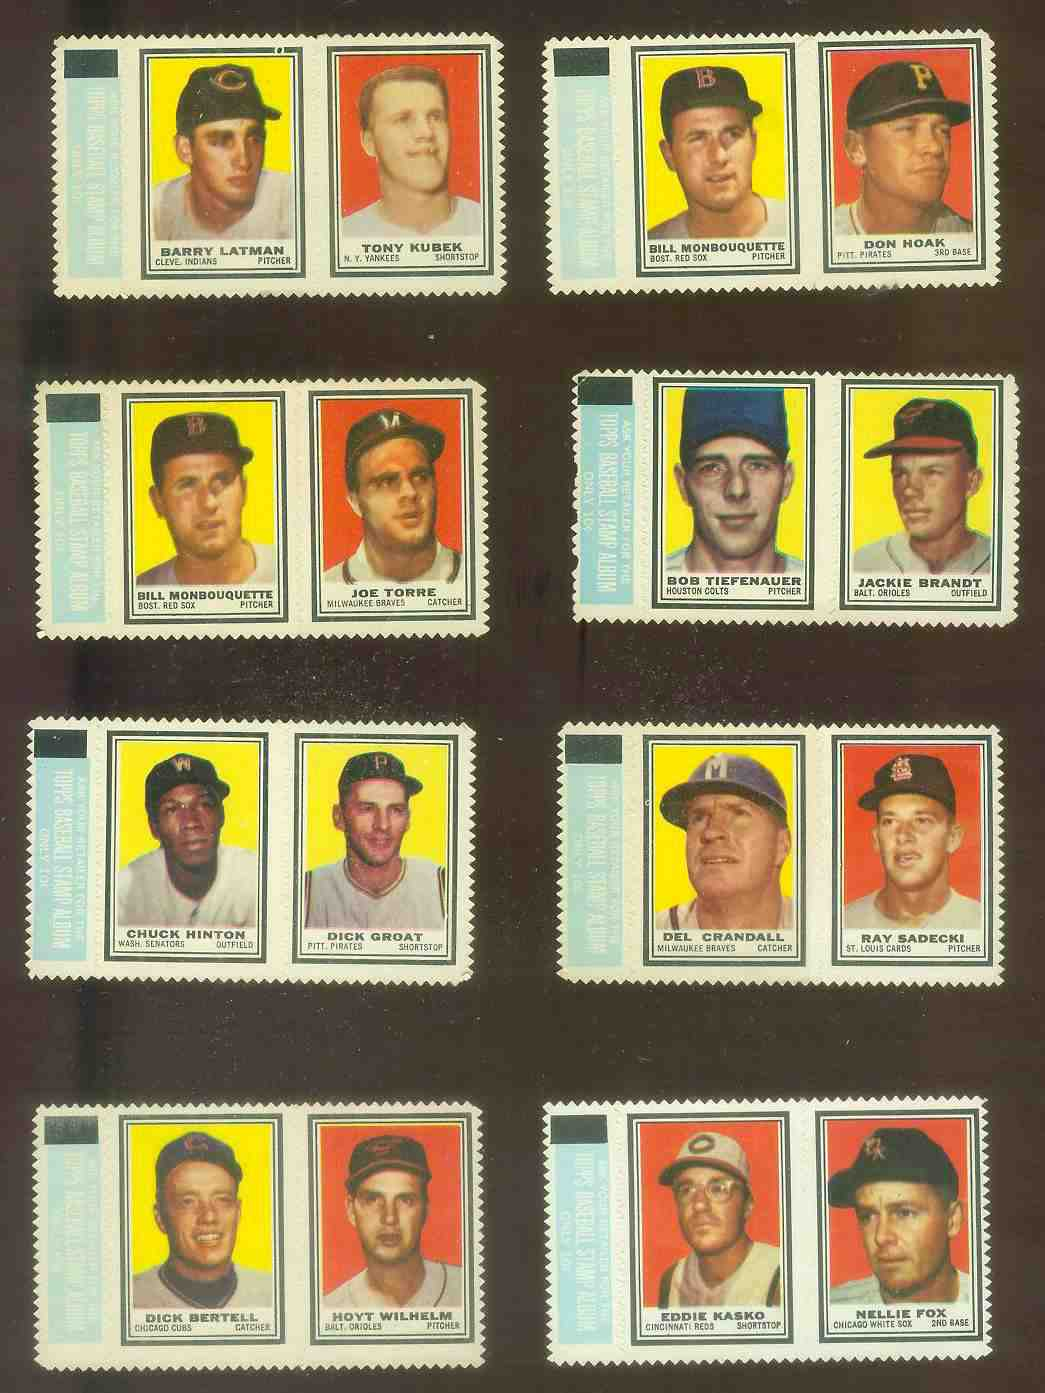 Chuck Hinton/Dick Groat - 1962 Topps STAMP PANEL with TAB !!! Baseball cards value